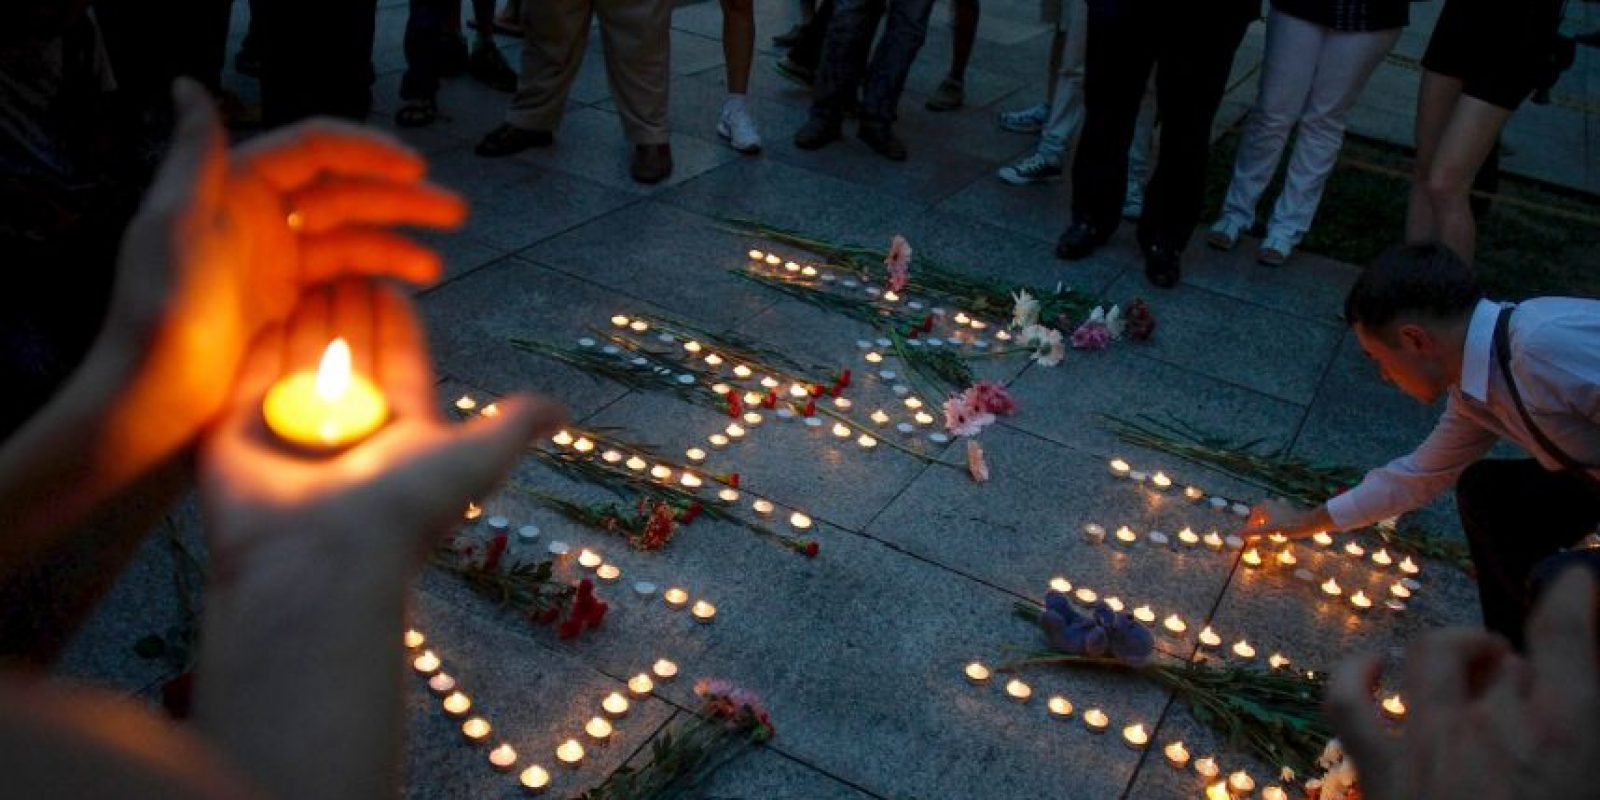 5. 17 de julio: Vuelo MH17 de Malaysia Airlines Foto: Getty Images